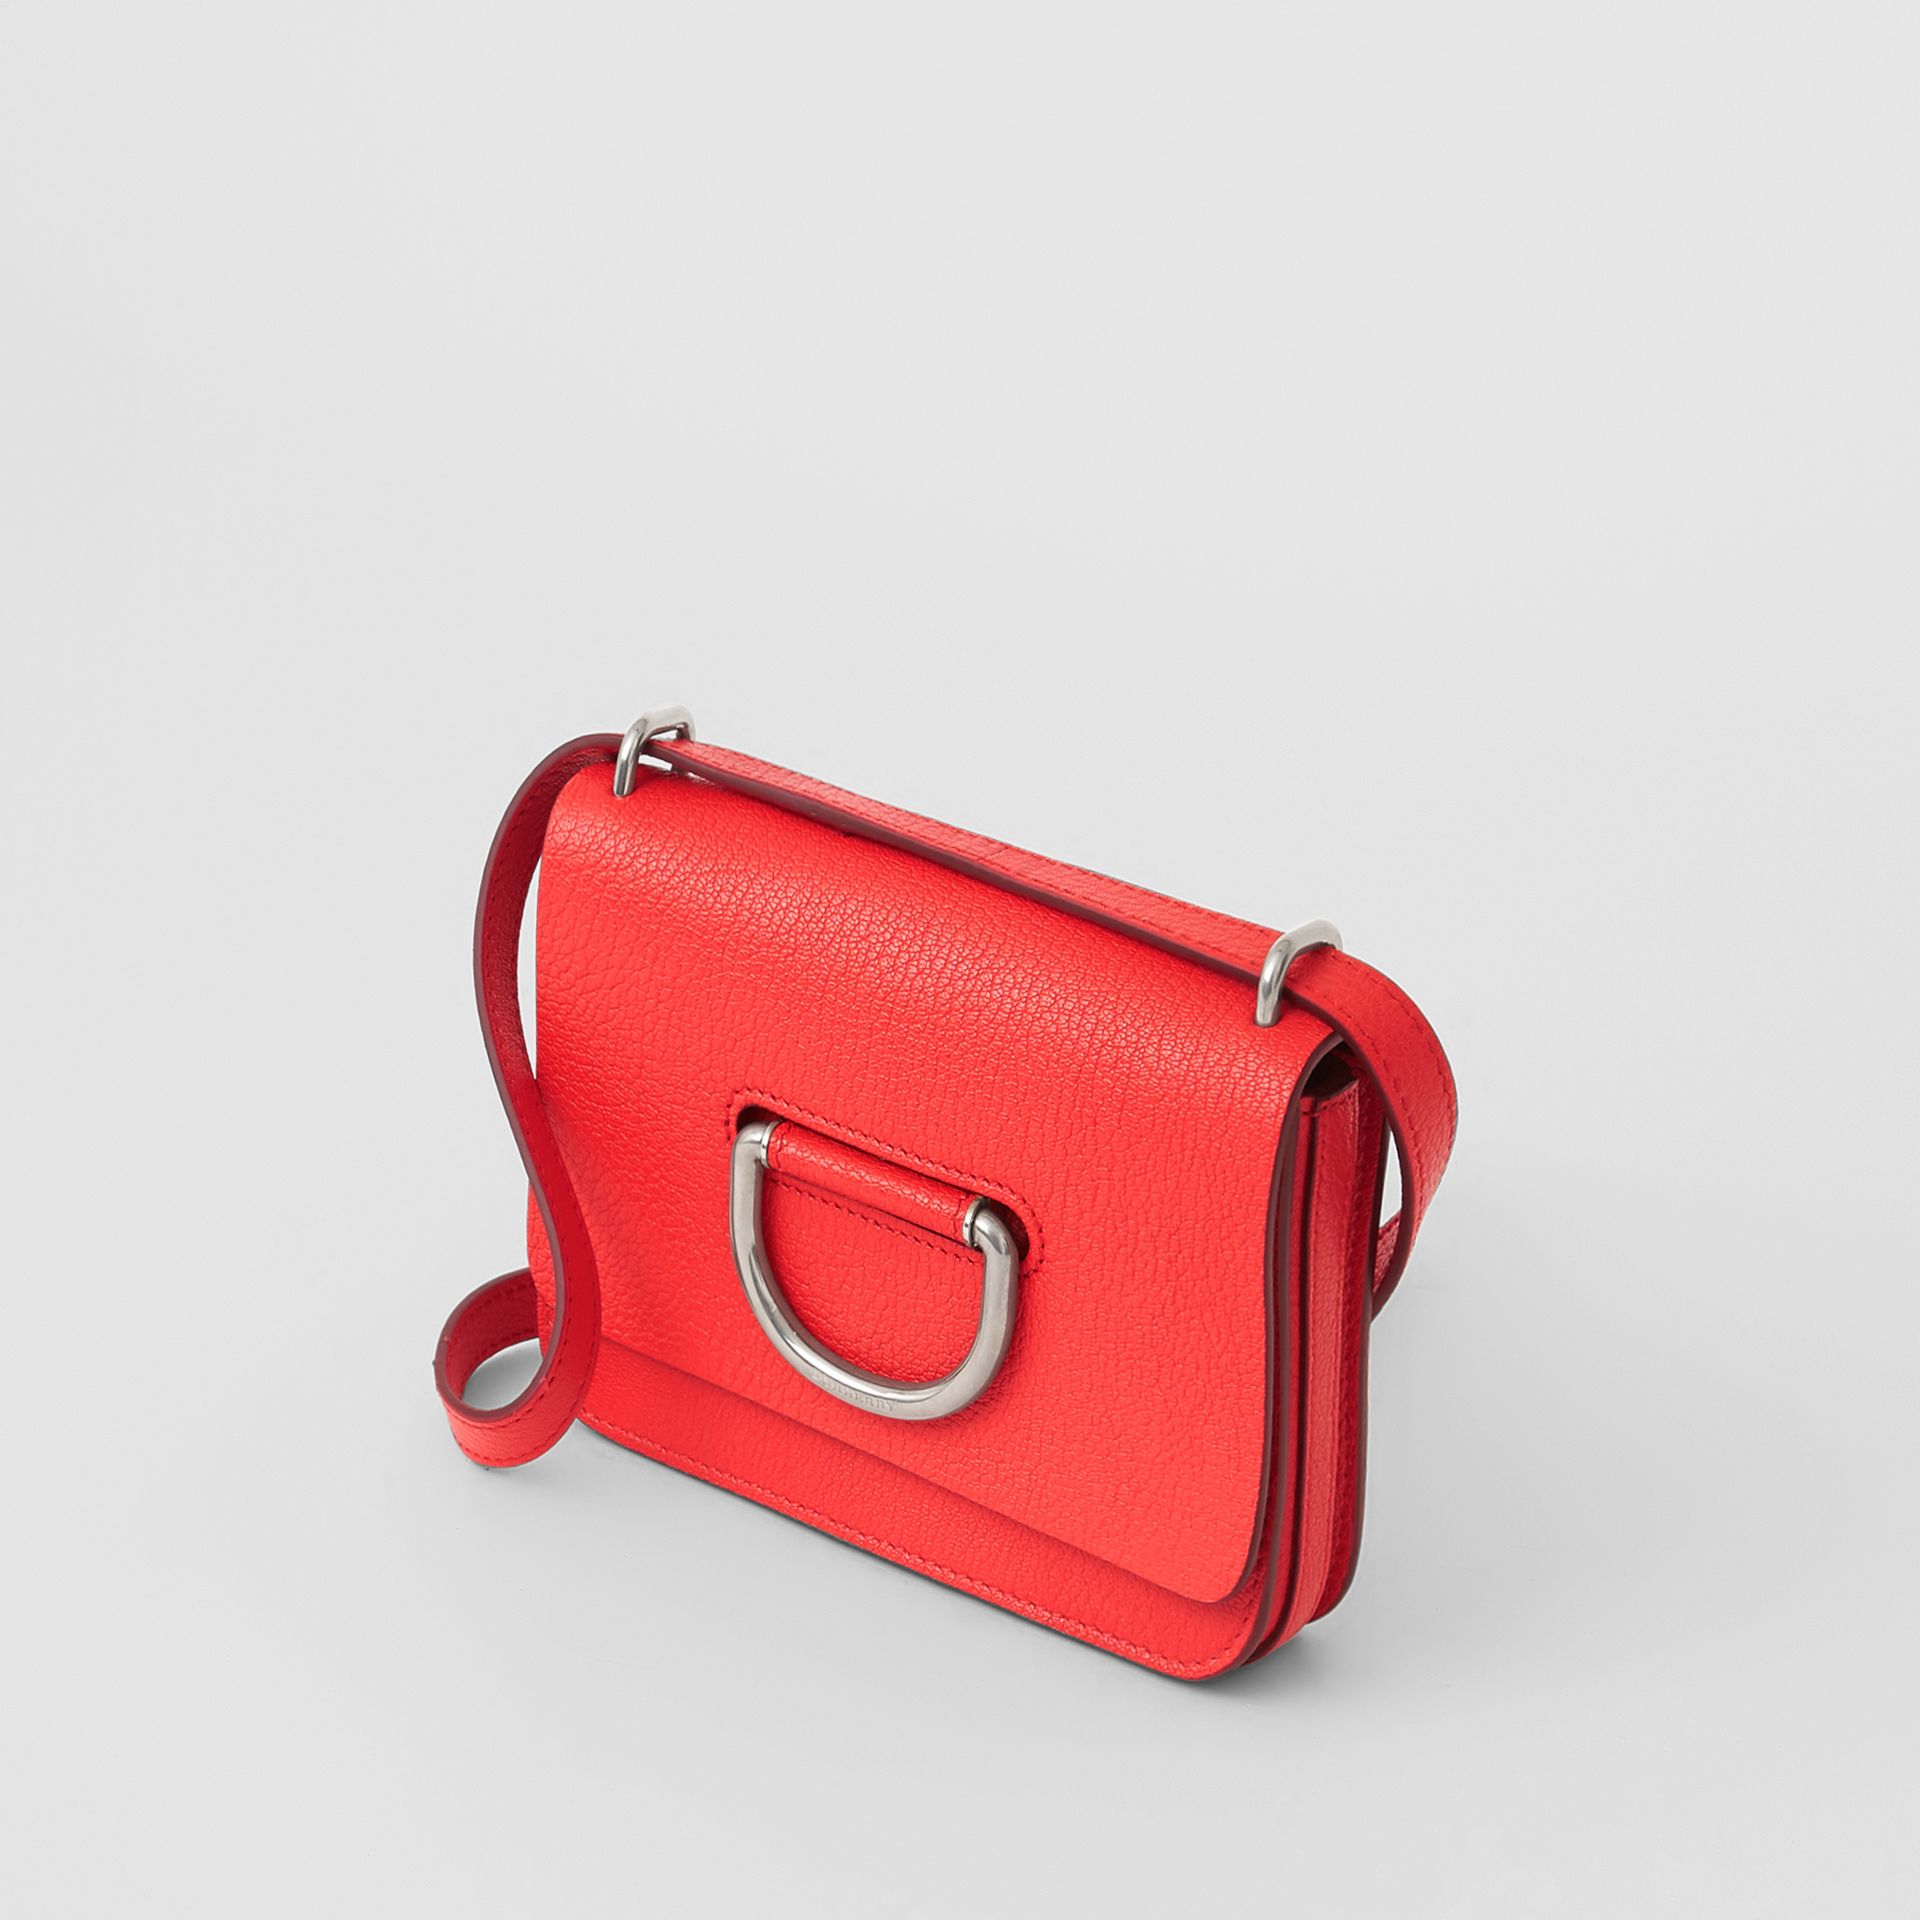 Mini sac The D-ring en cuir (Rouge Vif) - Femme | Burberry Canada - photo de la galerie 4